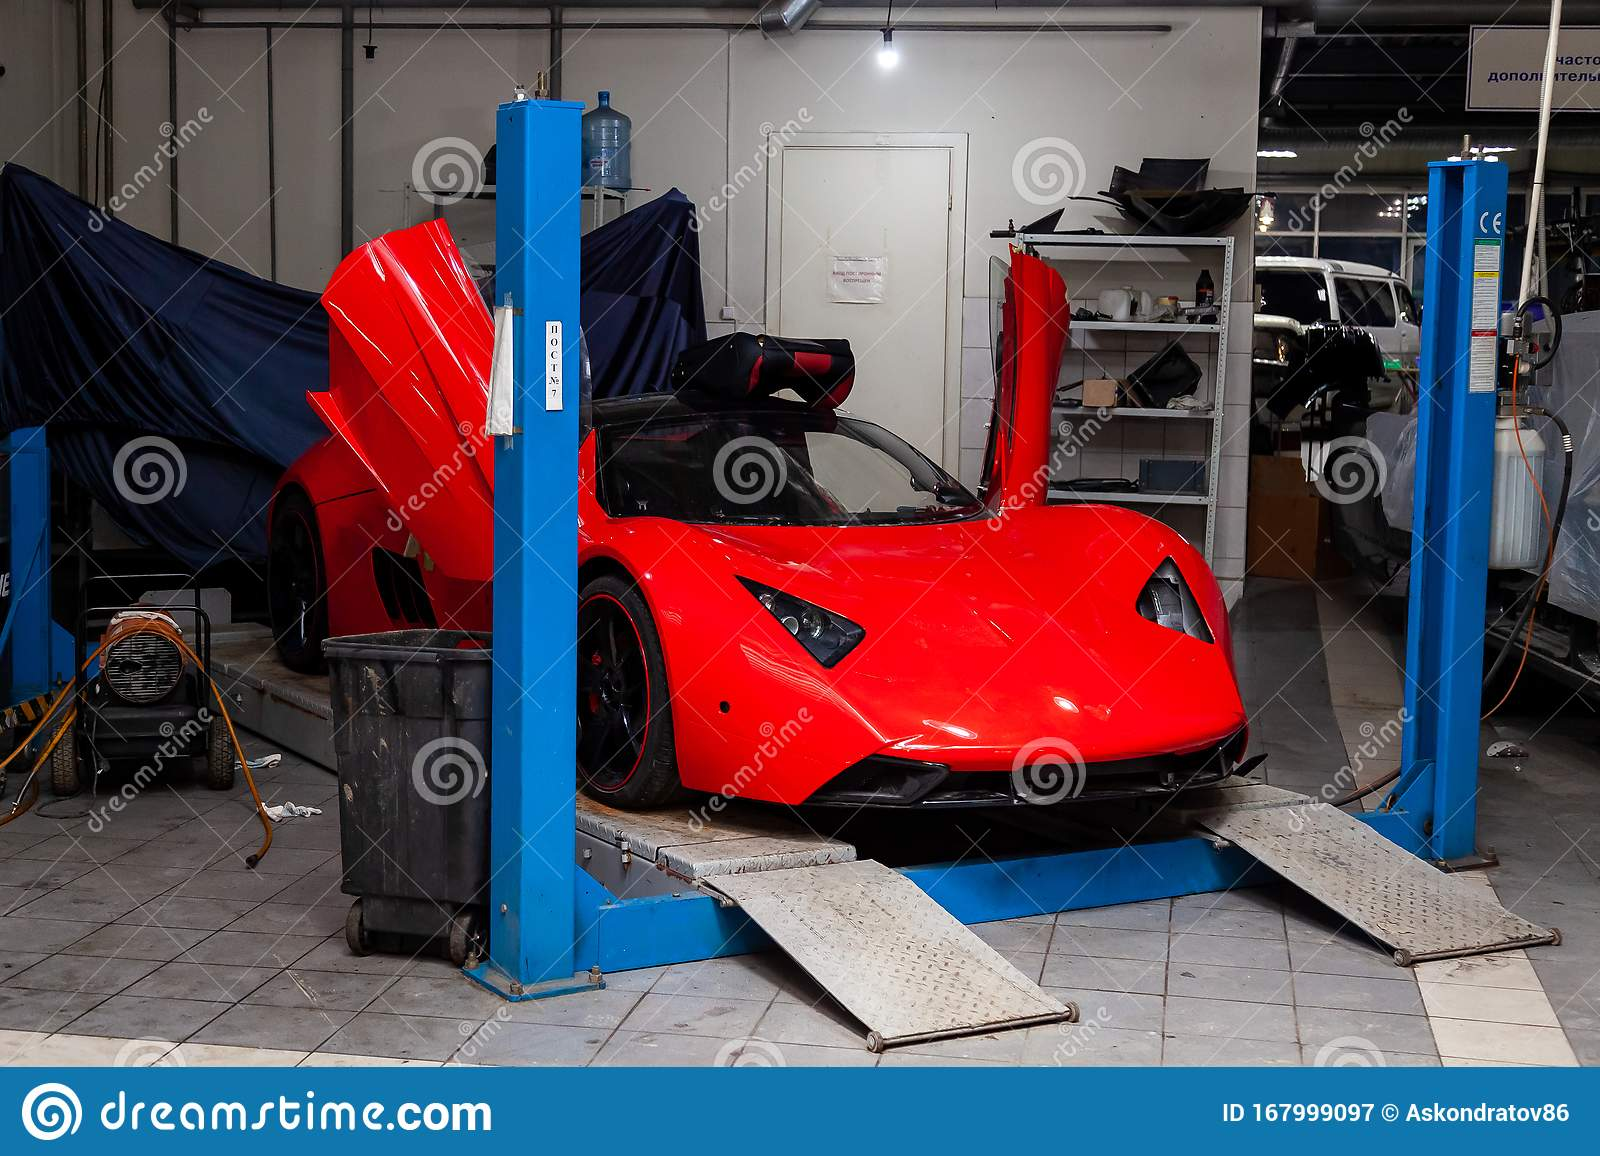 Red Sports Car Marussia B1 Raised On A Lift In A Car ...